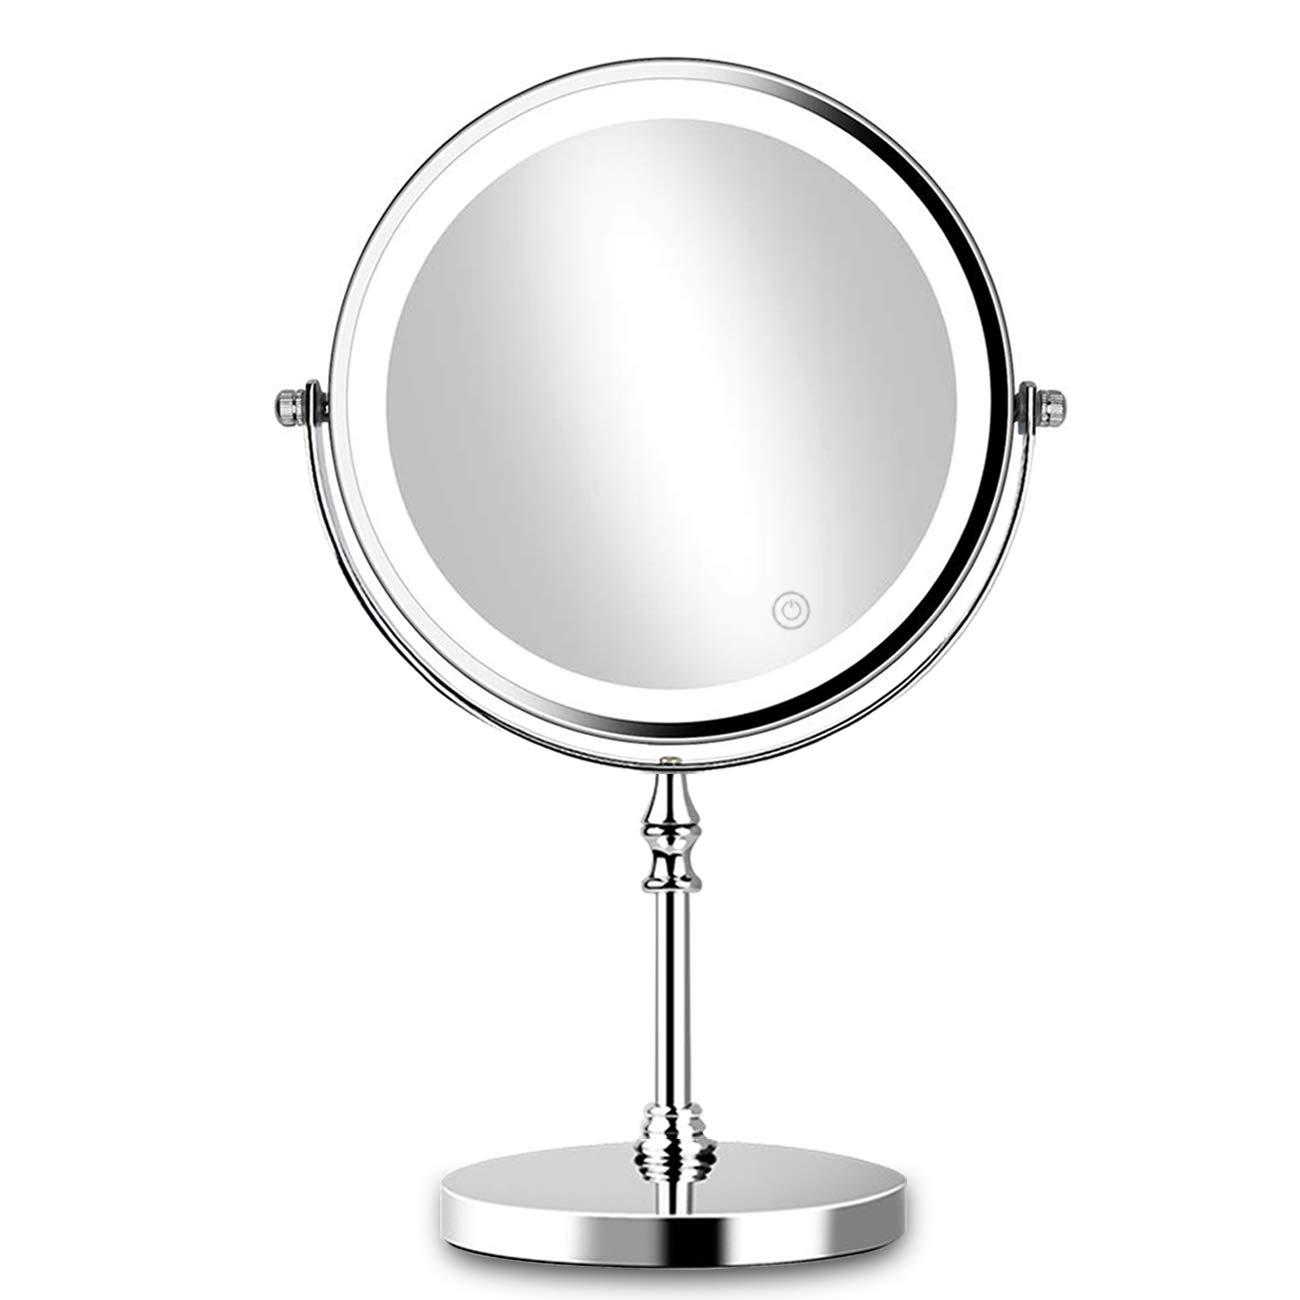 8in Lighted Makeup Mirror 10x Magnification Makeup Mirror with Lights Double Sided Round Mirror with 27pcs LED,Powered by 4xAAA Batteries (Not Included)